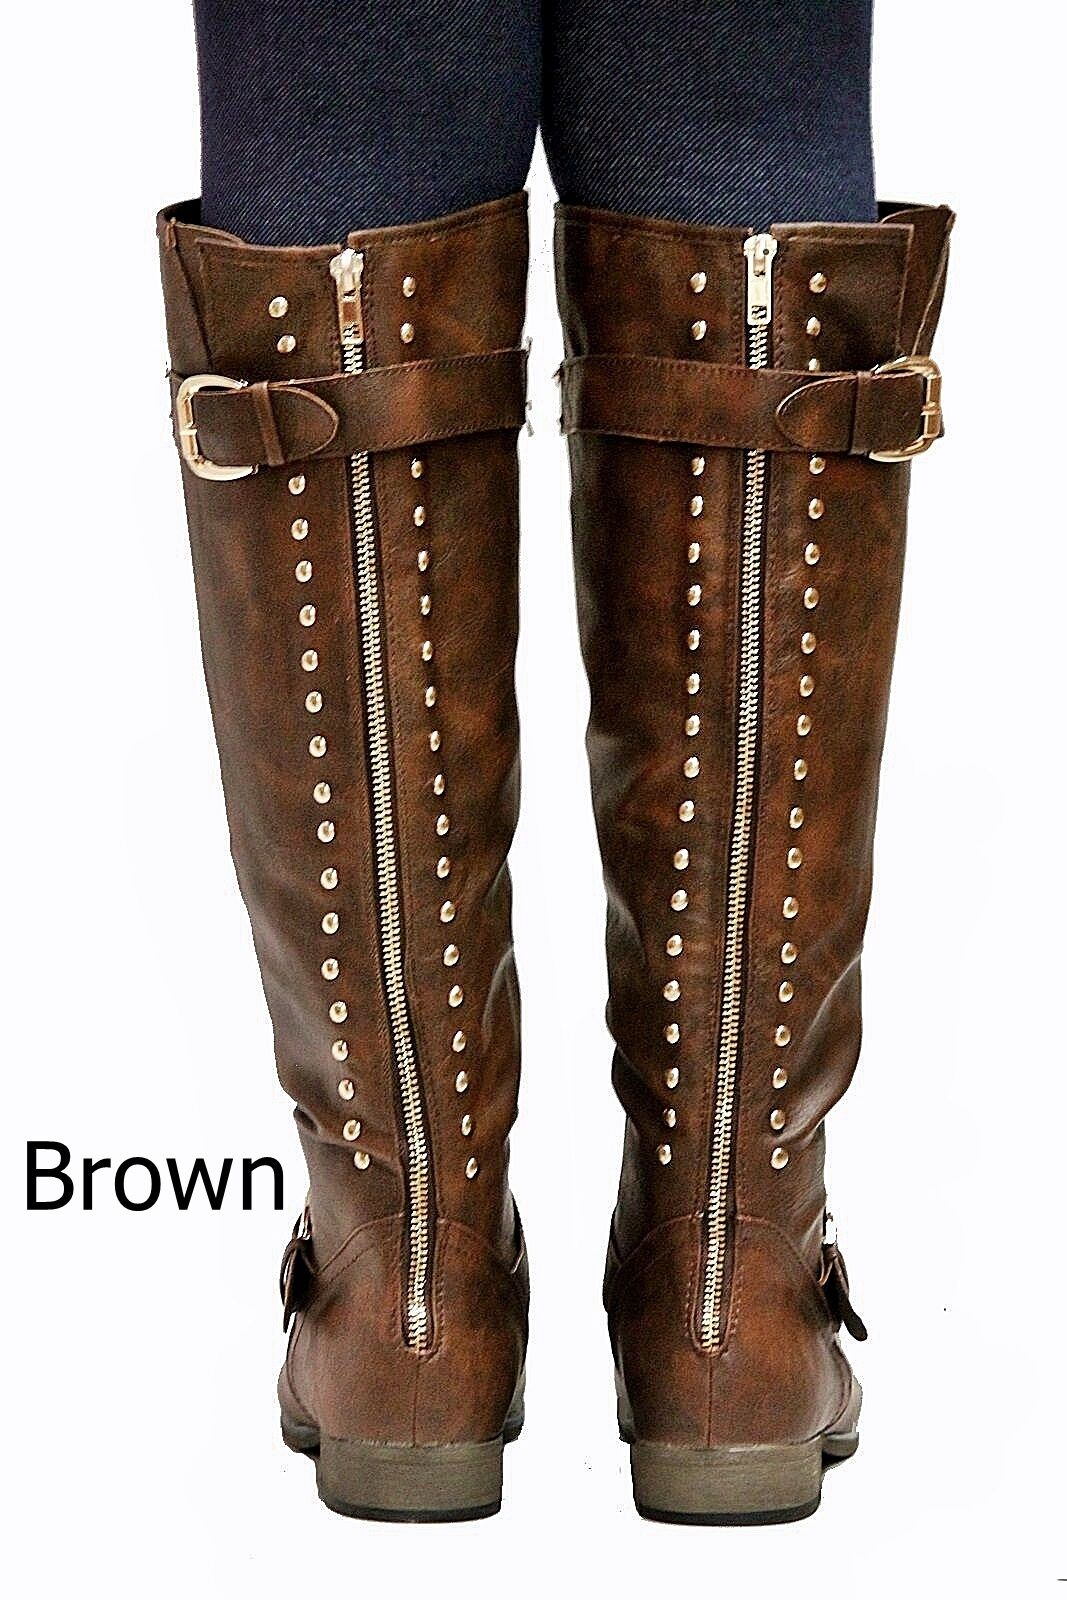 New Women FL23 Tan Black Taupe Brown Gold Studded Riding Knee High Boots